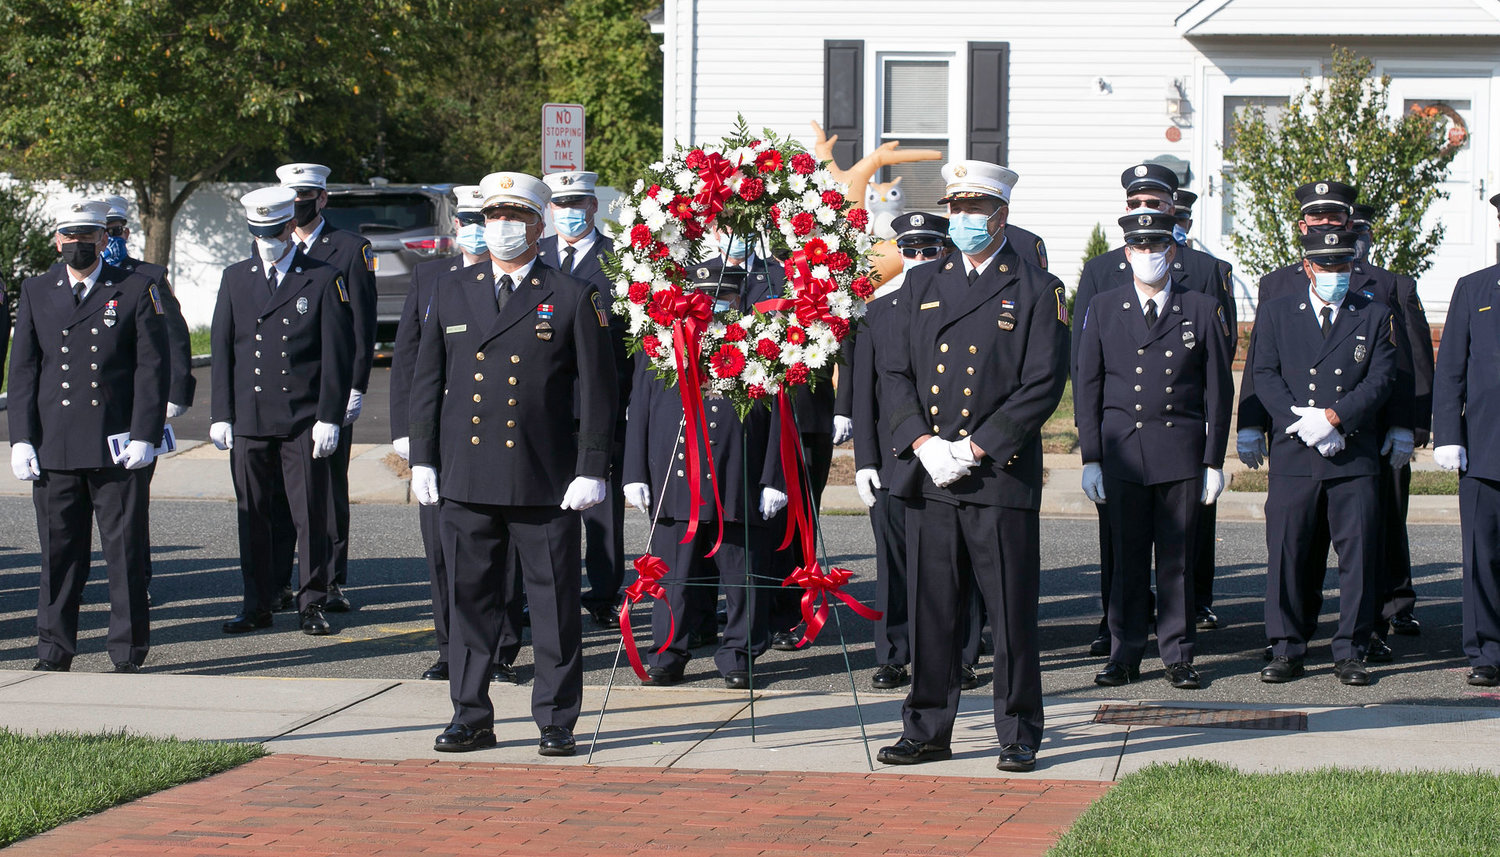 The ceremony on Sunday took place outside of the fire house.